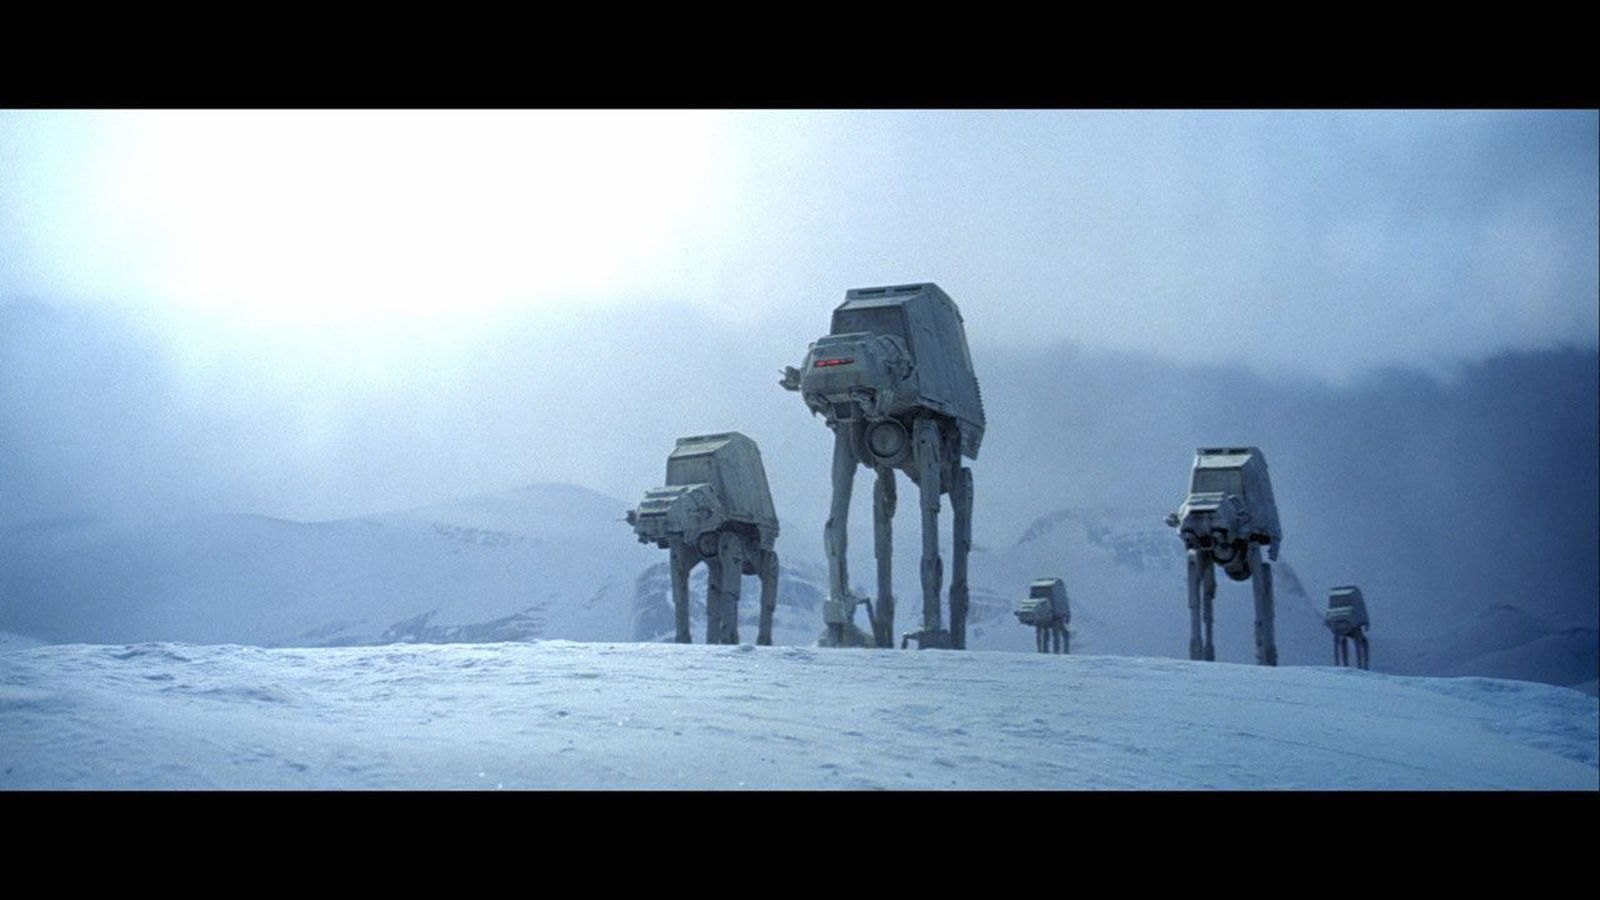 See what The Empire Strikes Back trailer would look like it if came out today